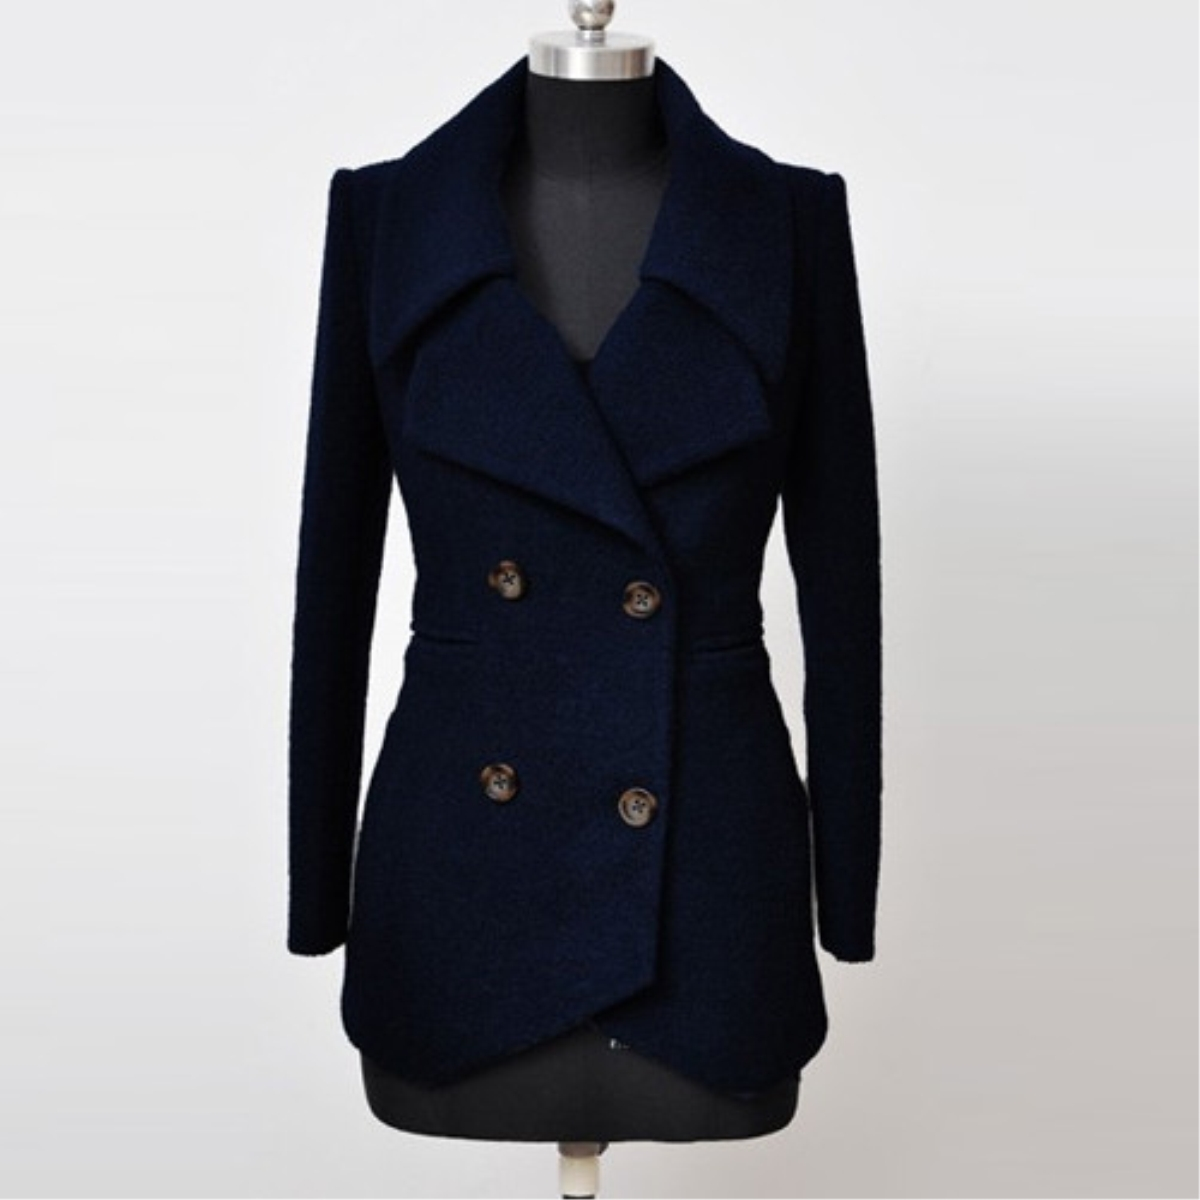 Plain Double-breasted Lapel Woolen Coat,Cheap in Wendybox.com